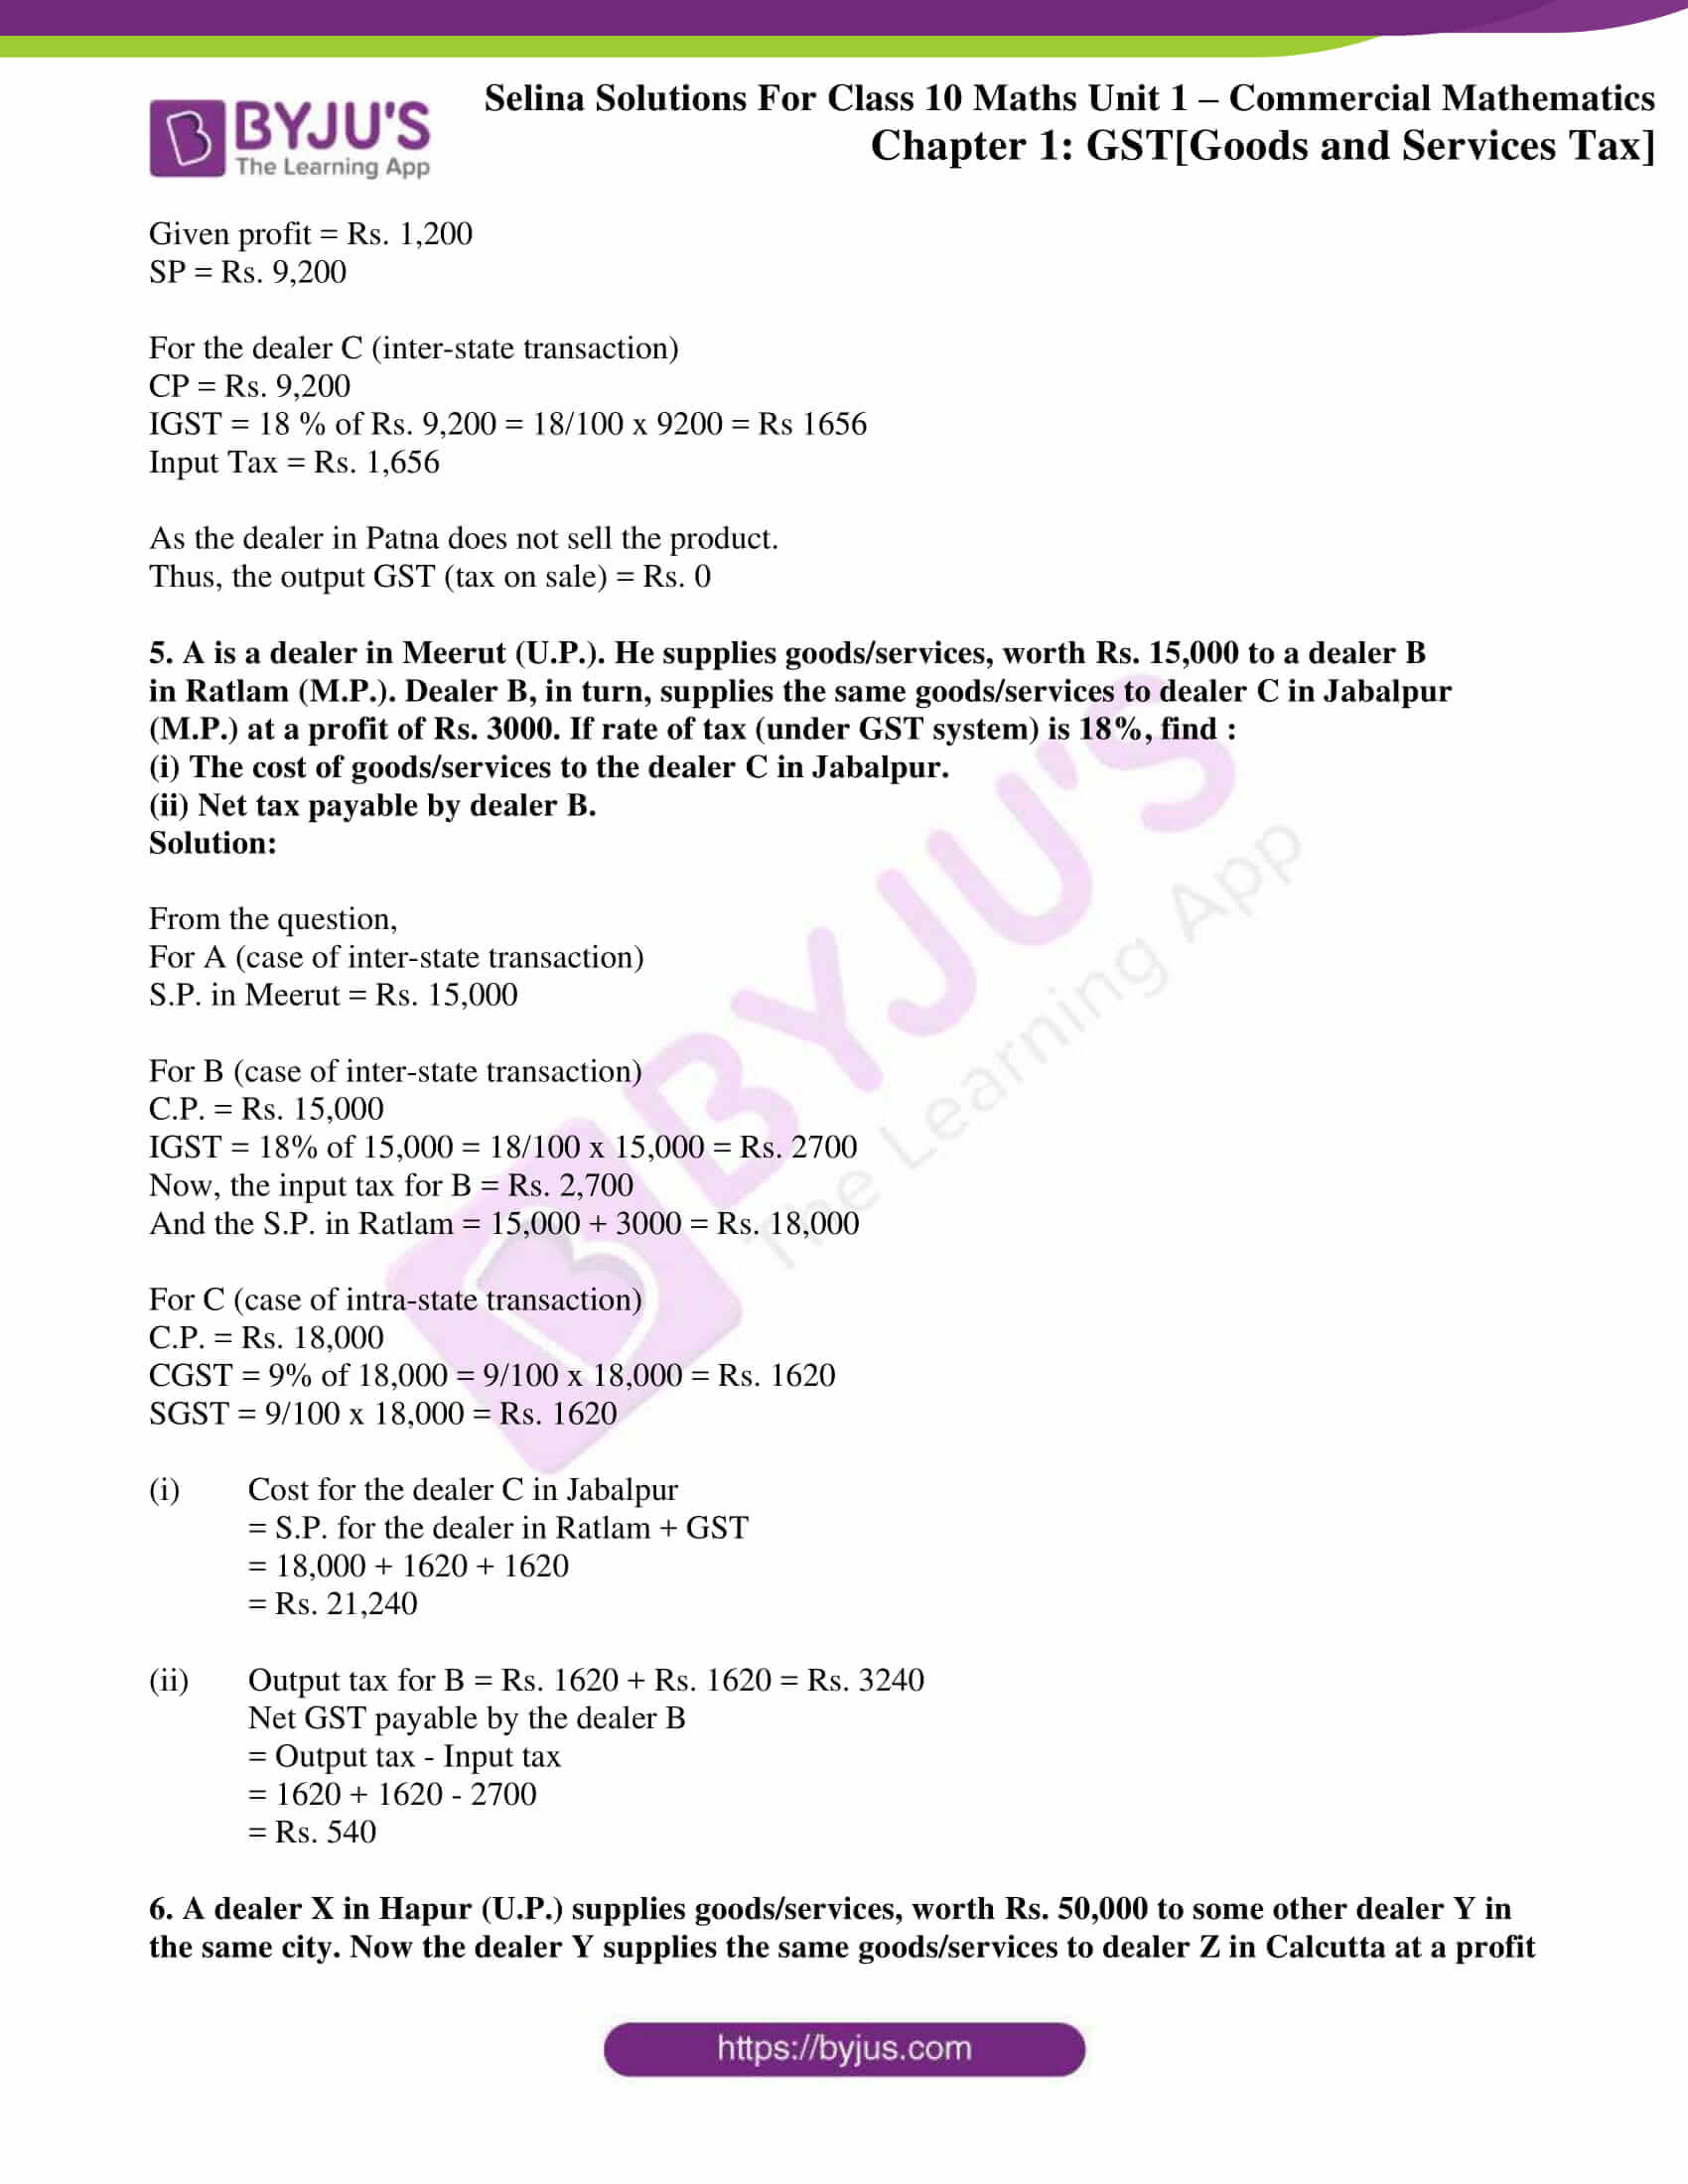 selina solution concise maths class 10 chapter 1b